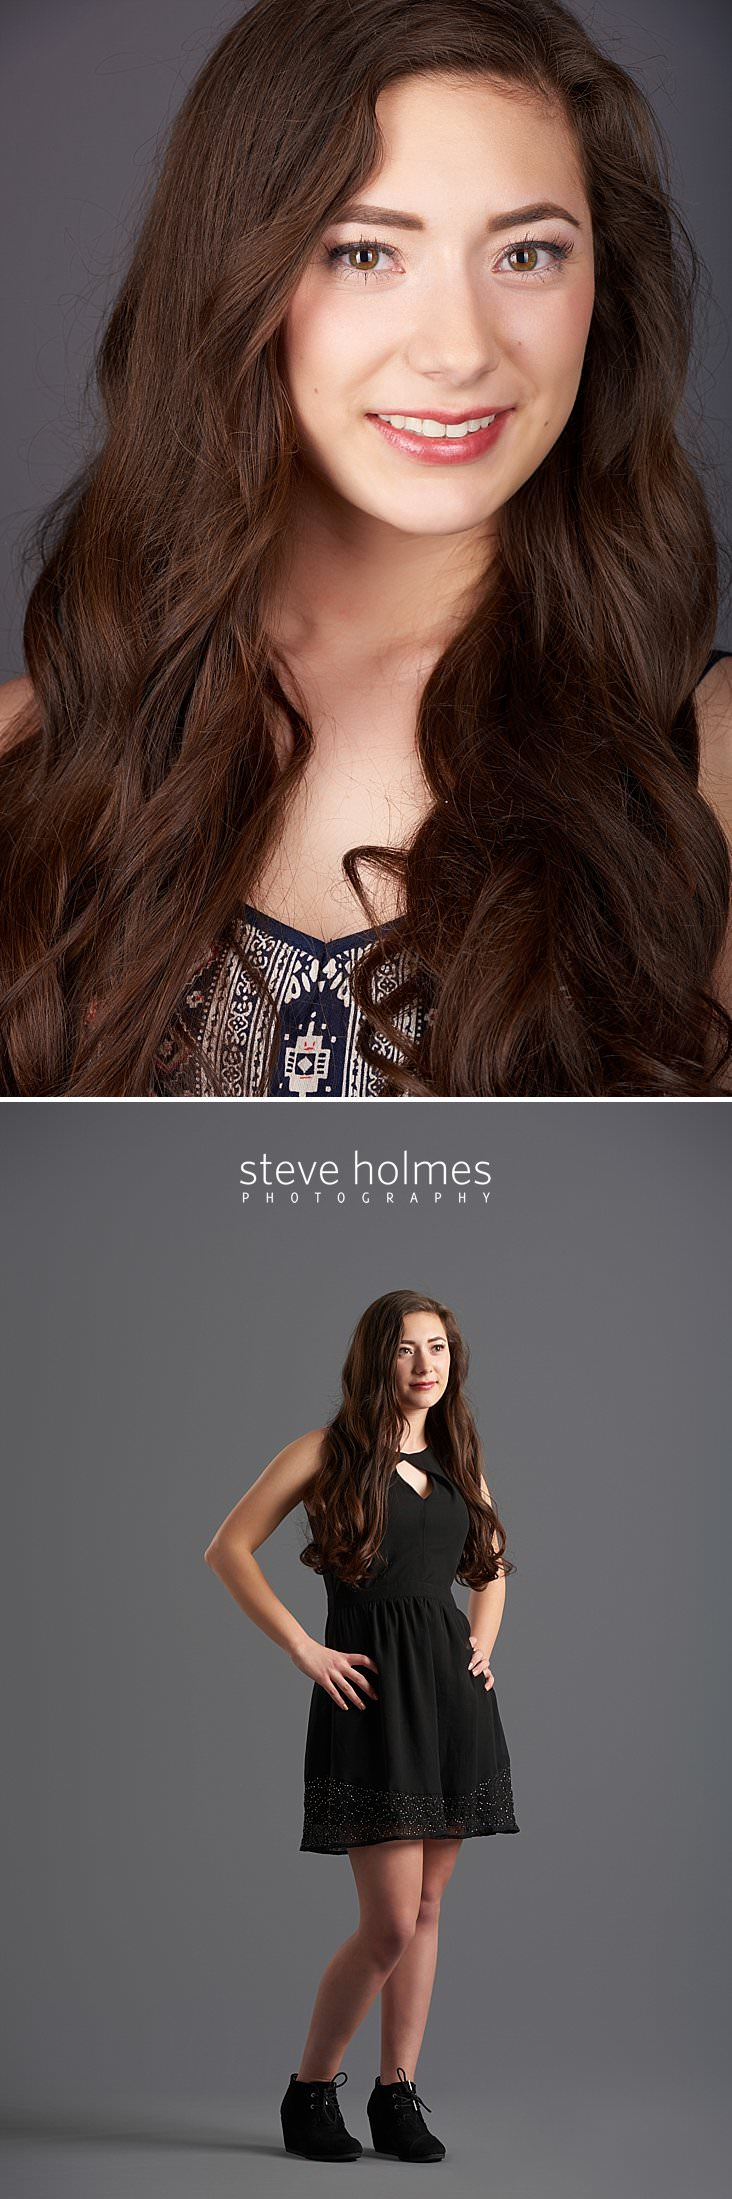 05_Close up studio senior portrait of teen girl with brown hair and brown eyes.jpg